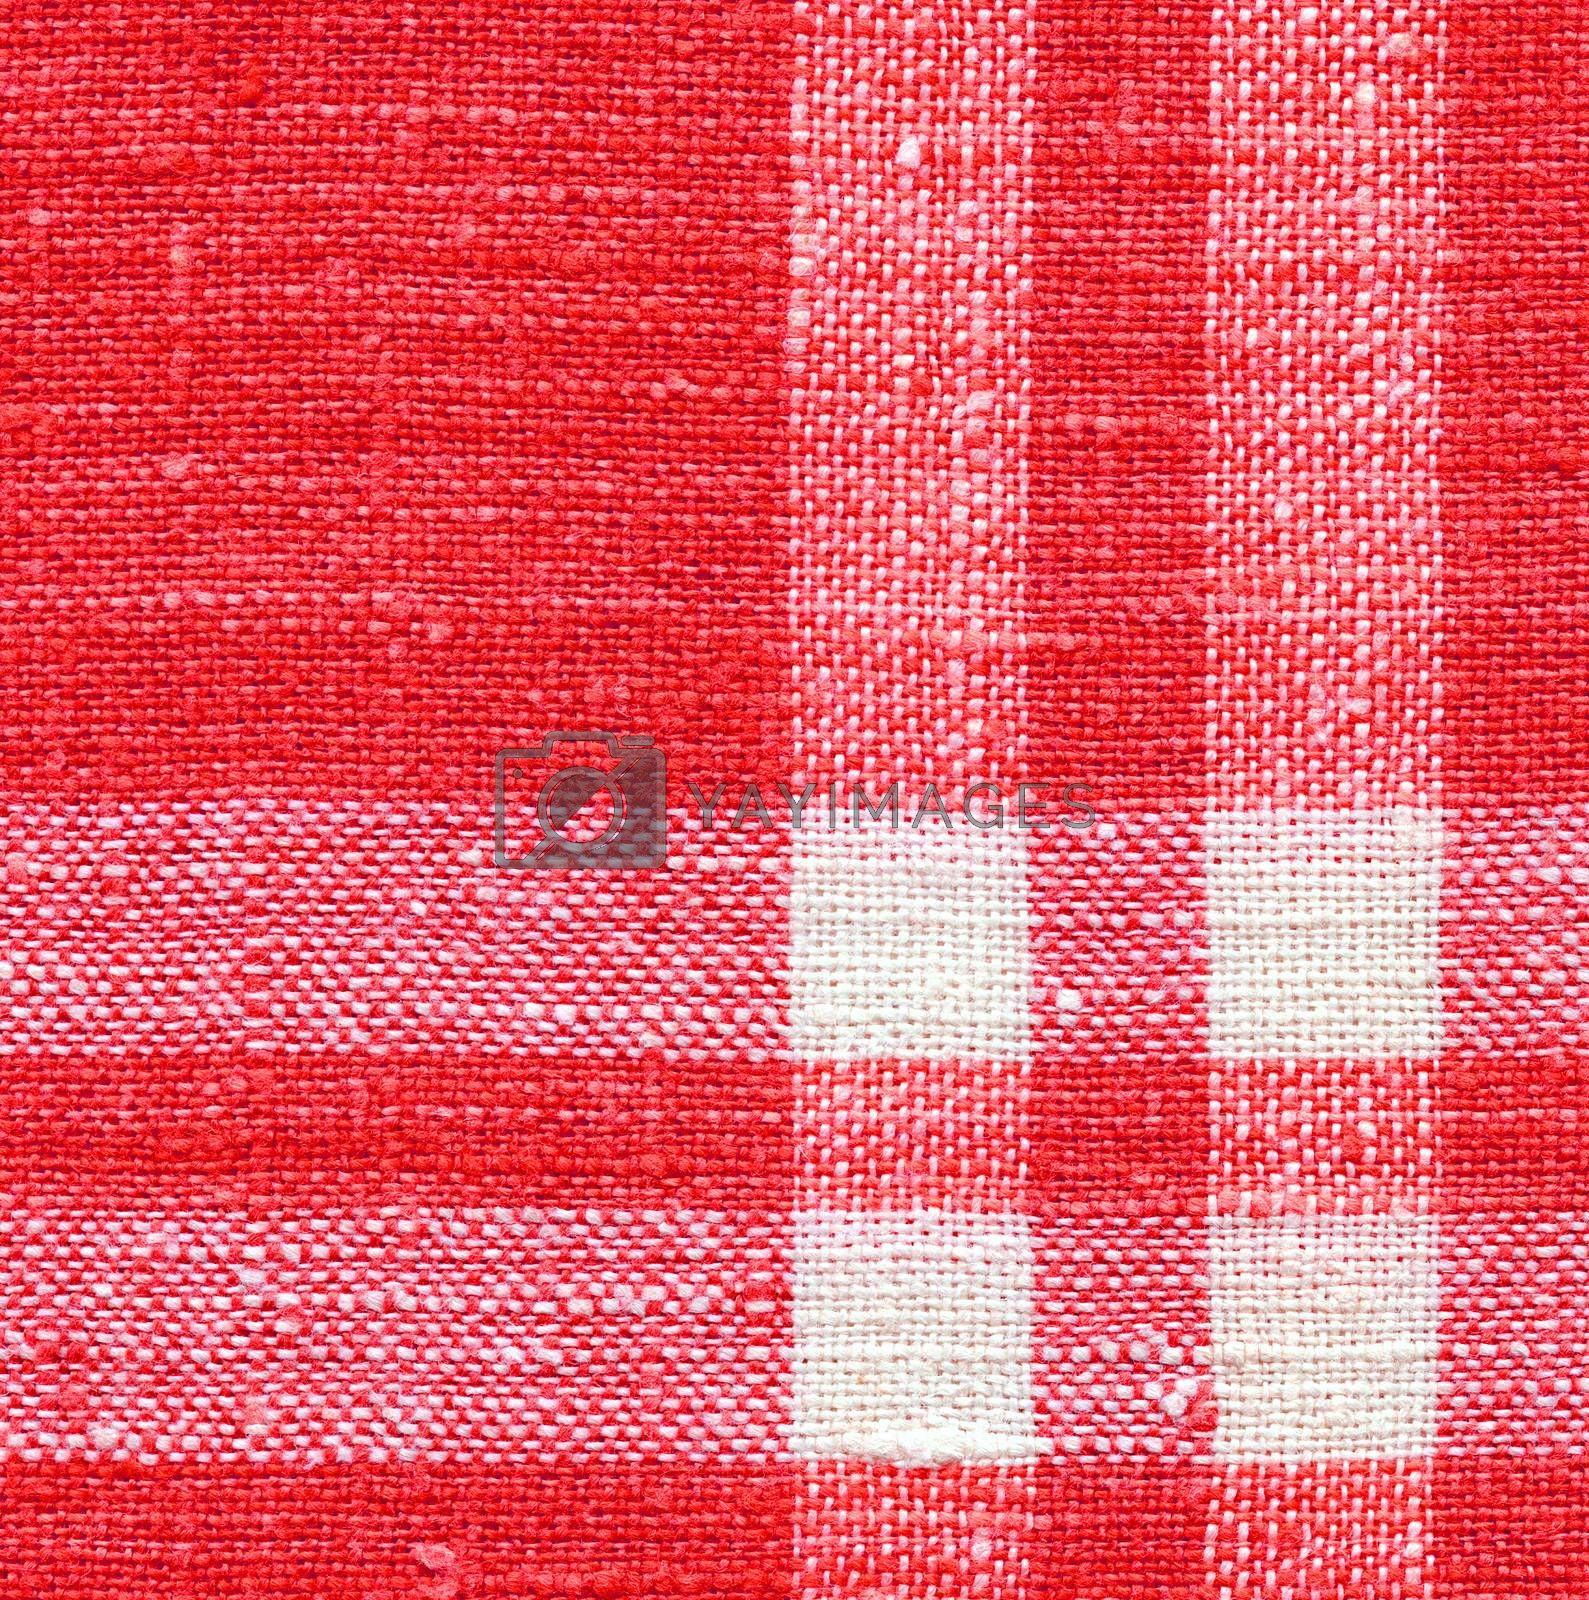 Canvas Texture. Red and White Color